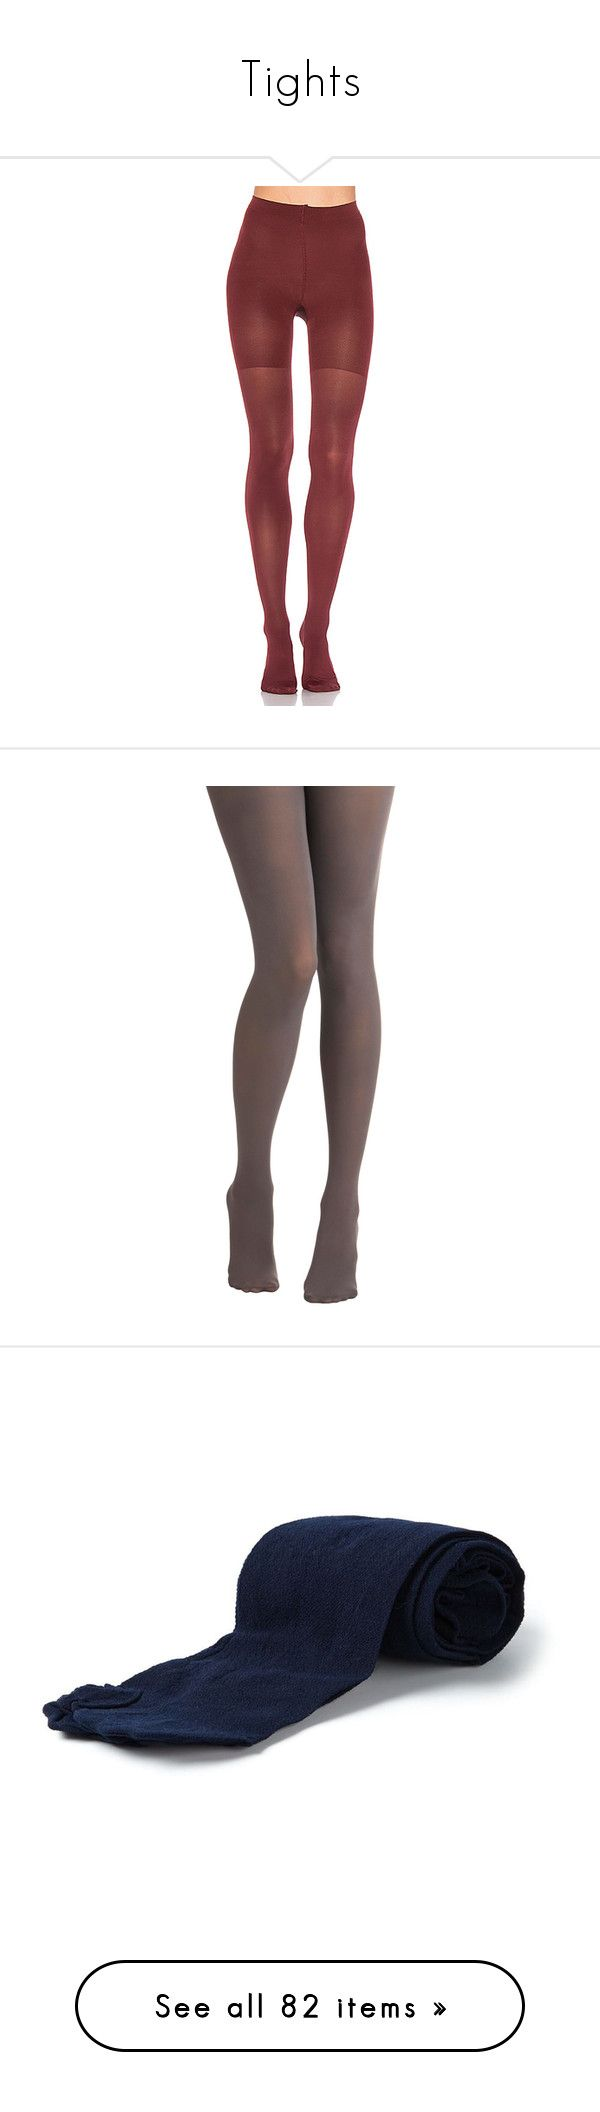 """""""Tights"""" by kingdomofborduria ❤ liked on Polyvore featuring intimates, hosiery, tights, socks/tights, nylon stockings, nylon hosiery, spanx tights, opaque pantyhose, opaque tights and accessories"""